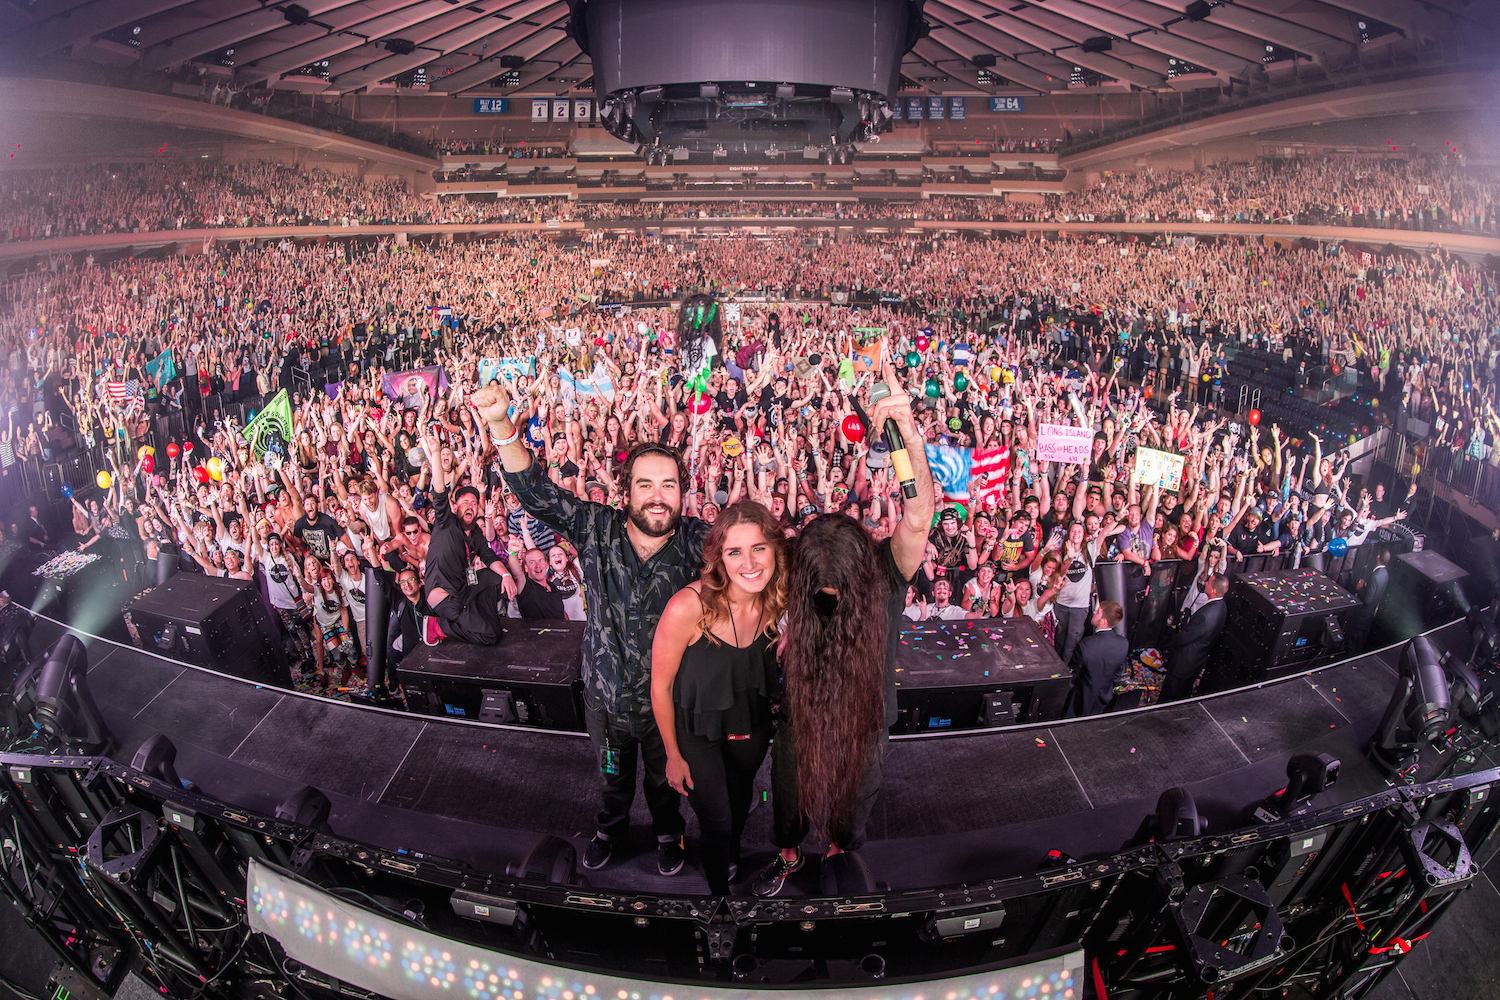 BASS CENTER VIII - MADISON SQUARE GARDEN FAMILY PHOTO